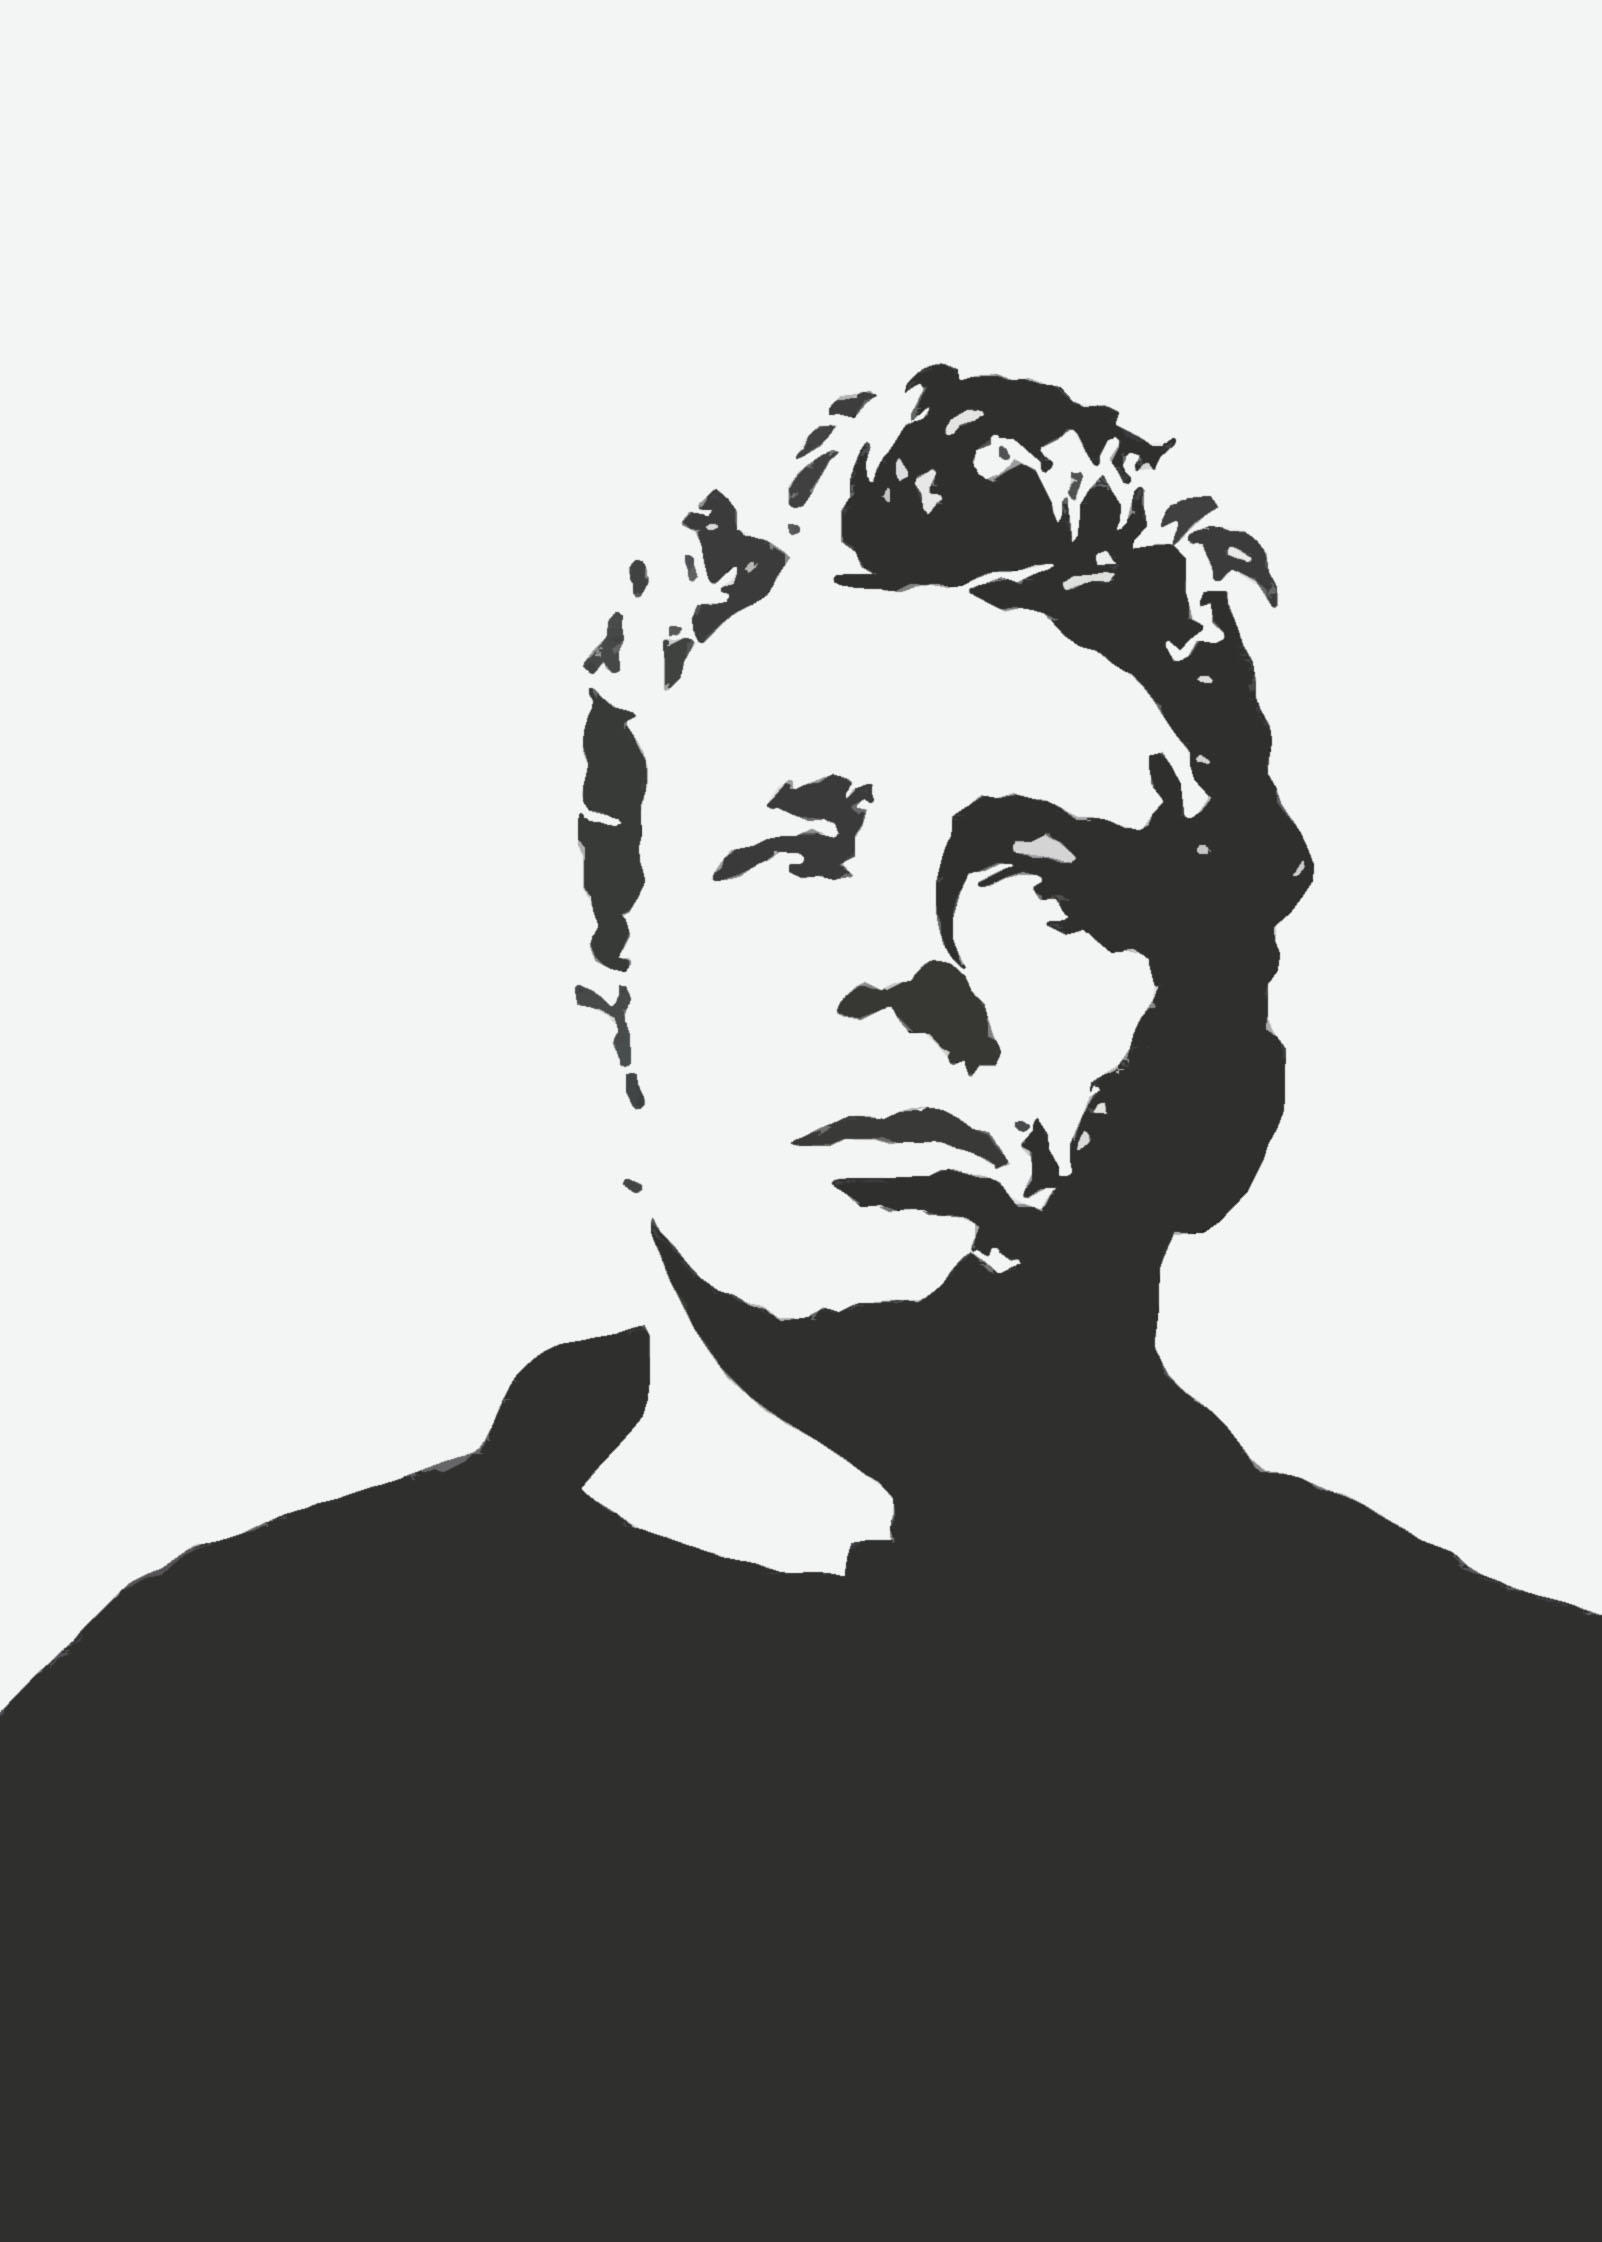 james dean black and white painting - photo #36